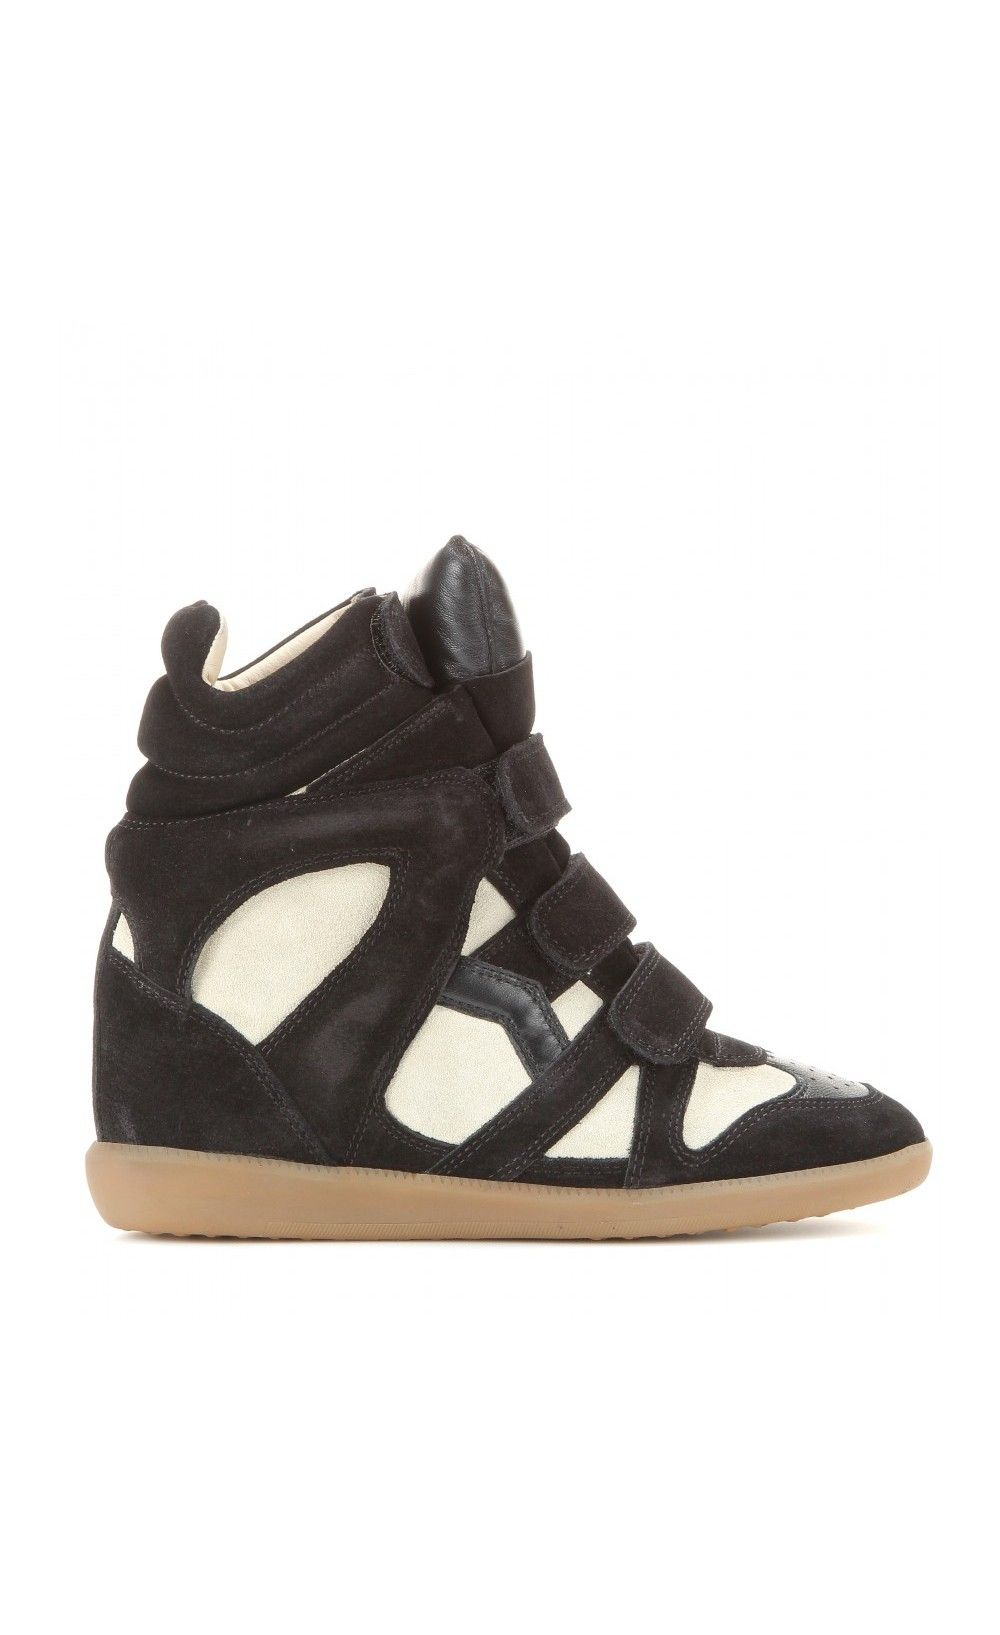 Isabel Marant Bekett Wedge Sneakers Black & Ecru Isabel